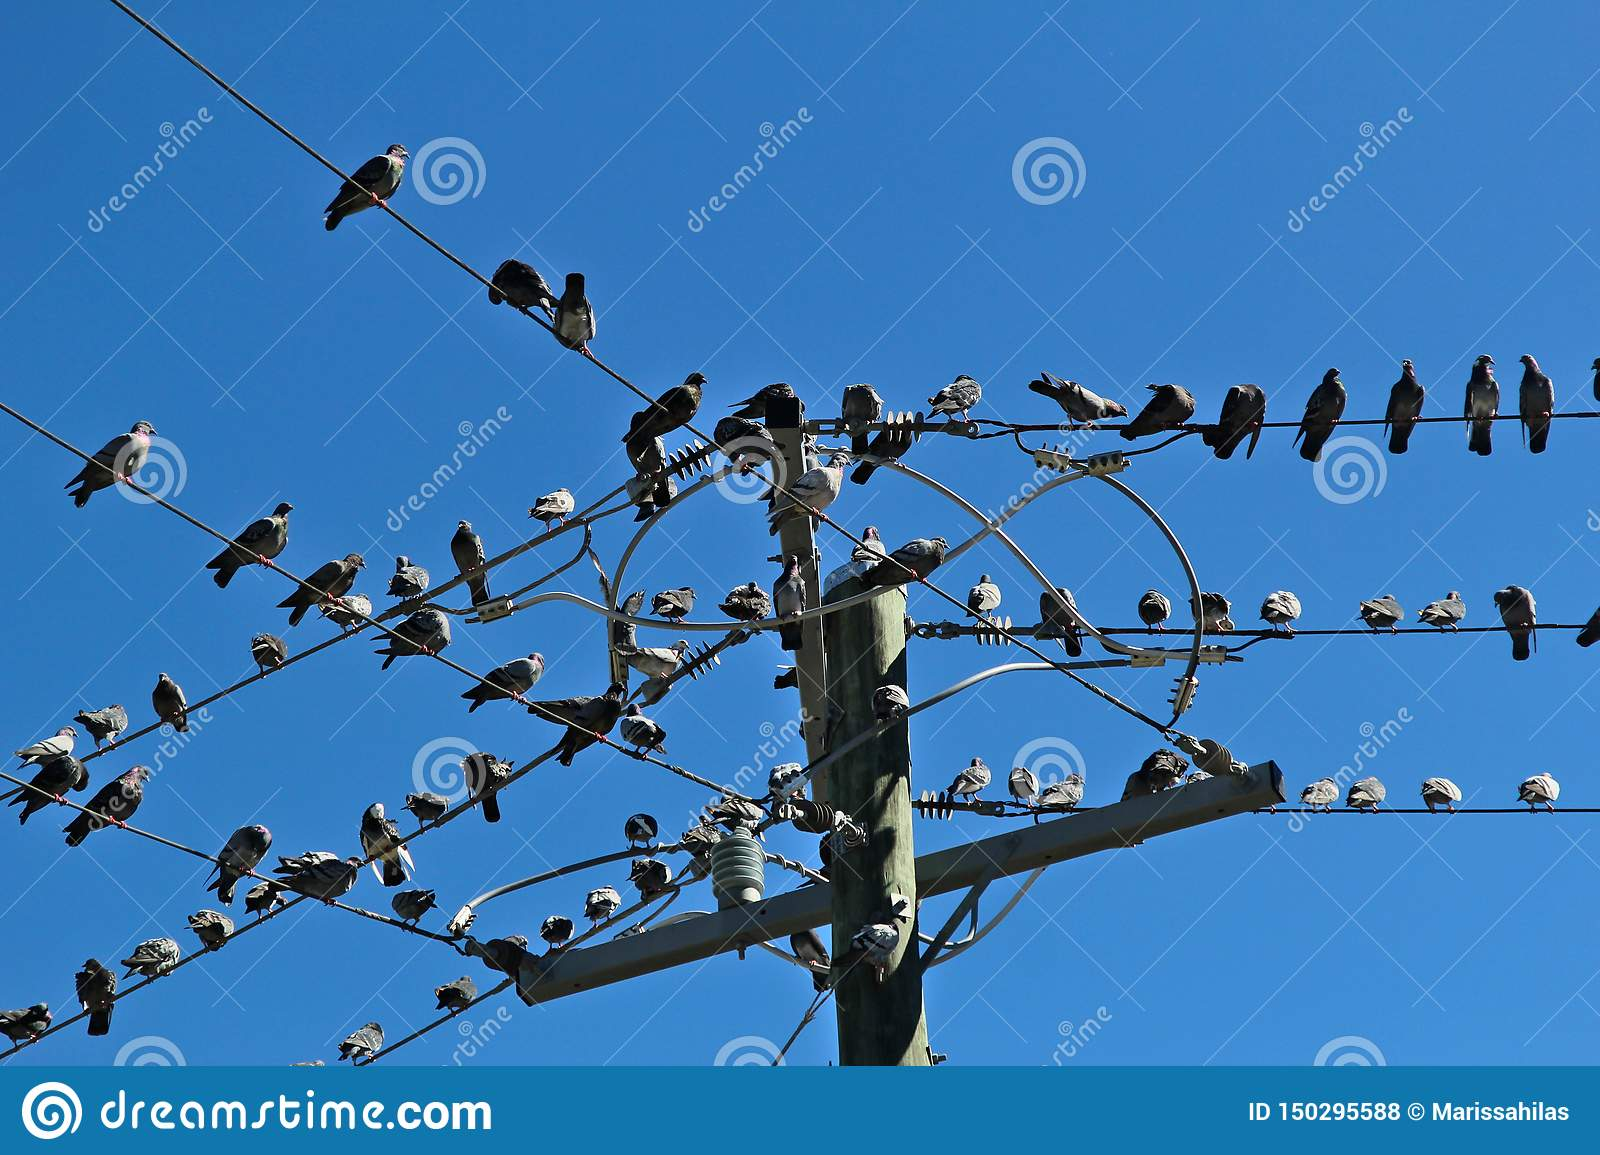 Many pigeons sat on a some wires